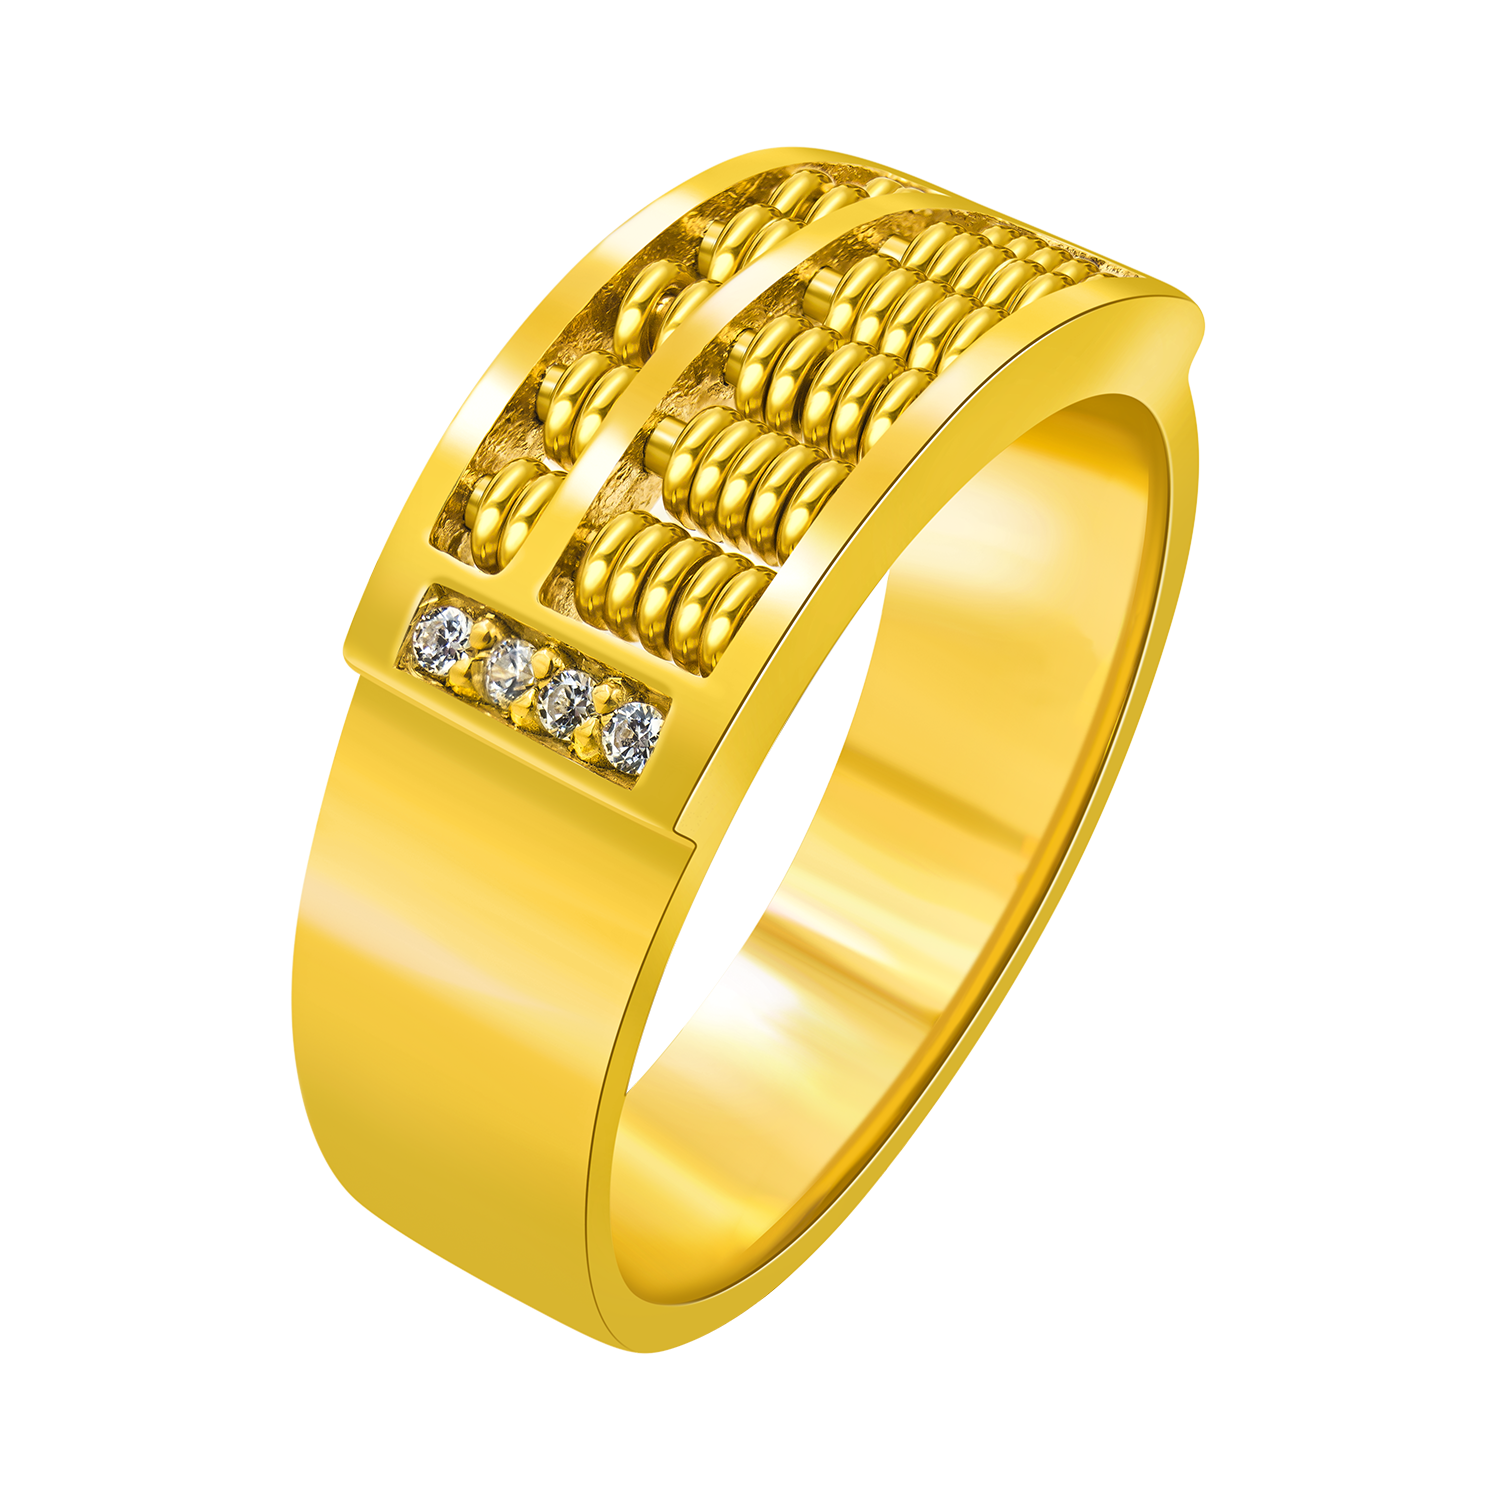 20K Gold Plated Abacus Ring | Jewellery Collection | Pinterest